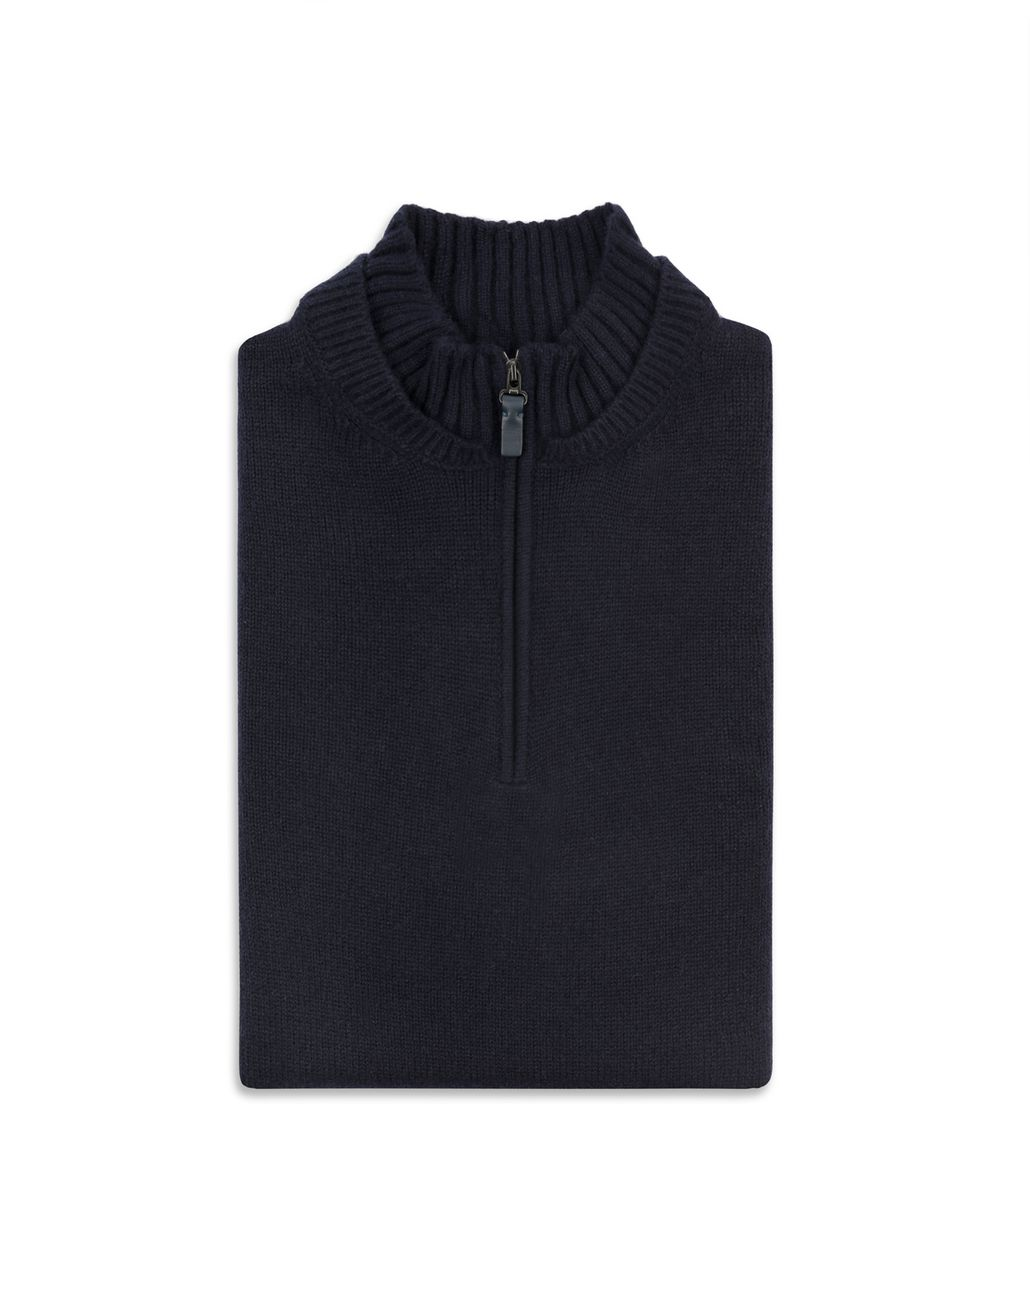 BRIONI Navy Blue Mock Neck Zipped Sweater Knitwear Man e